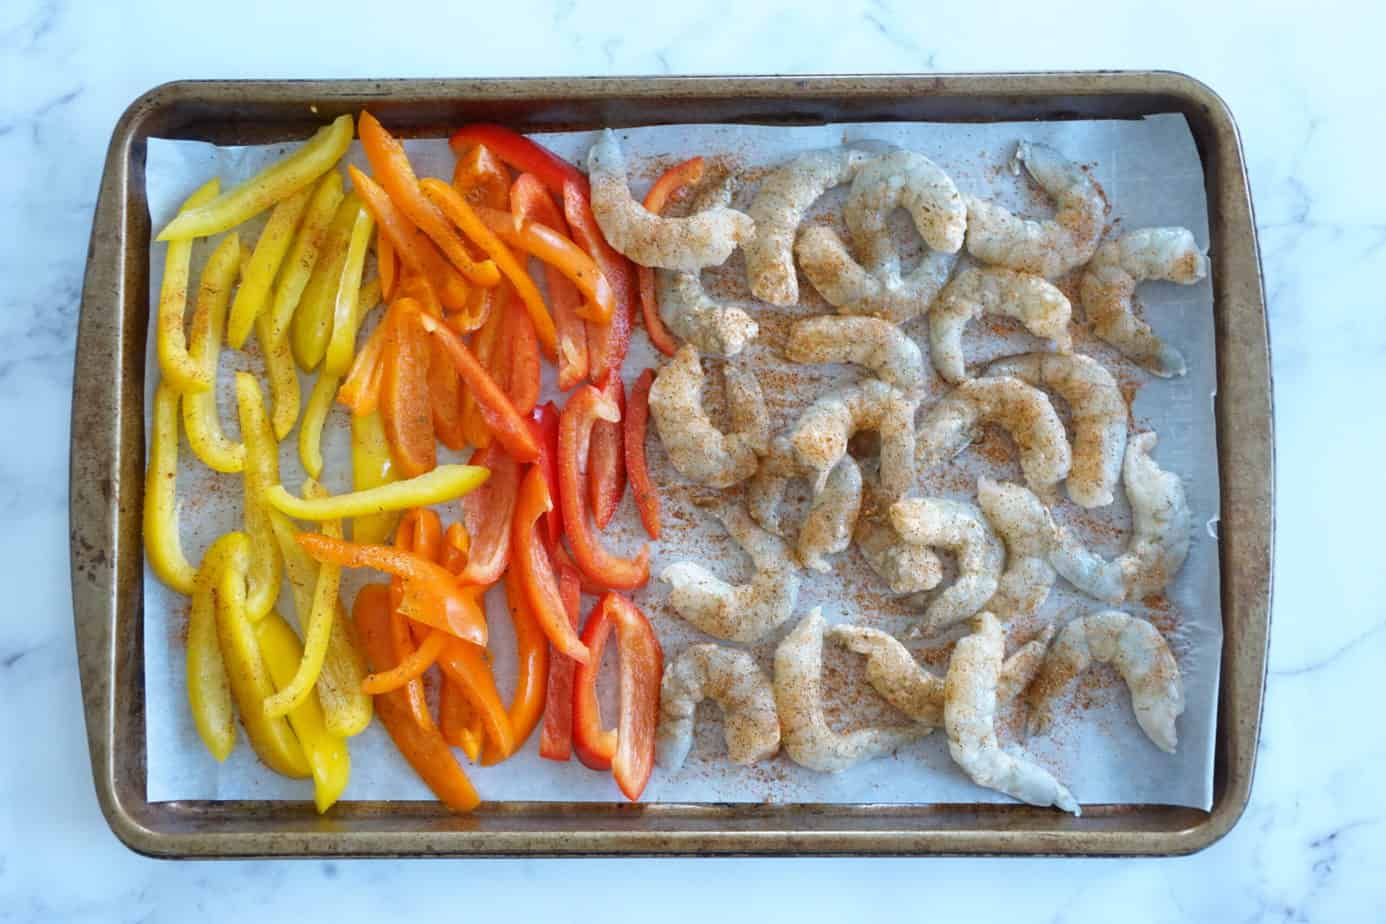 shrimp fajitas with seasoning, guacamole and cilantro before cooking